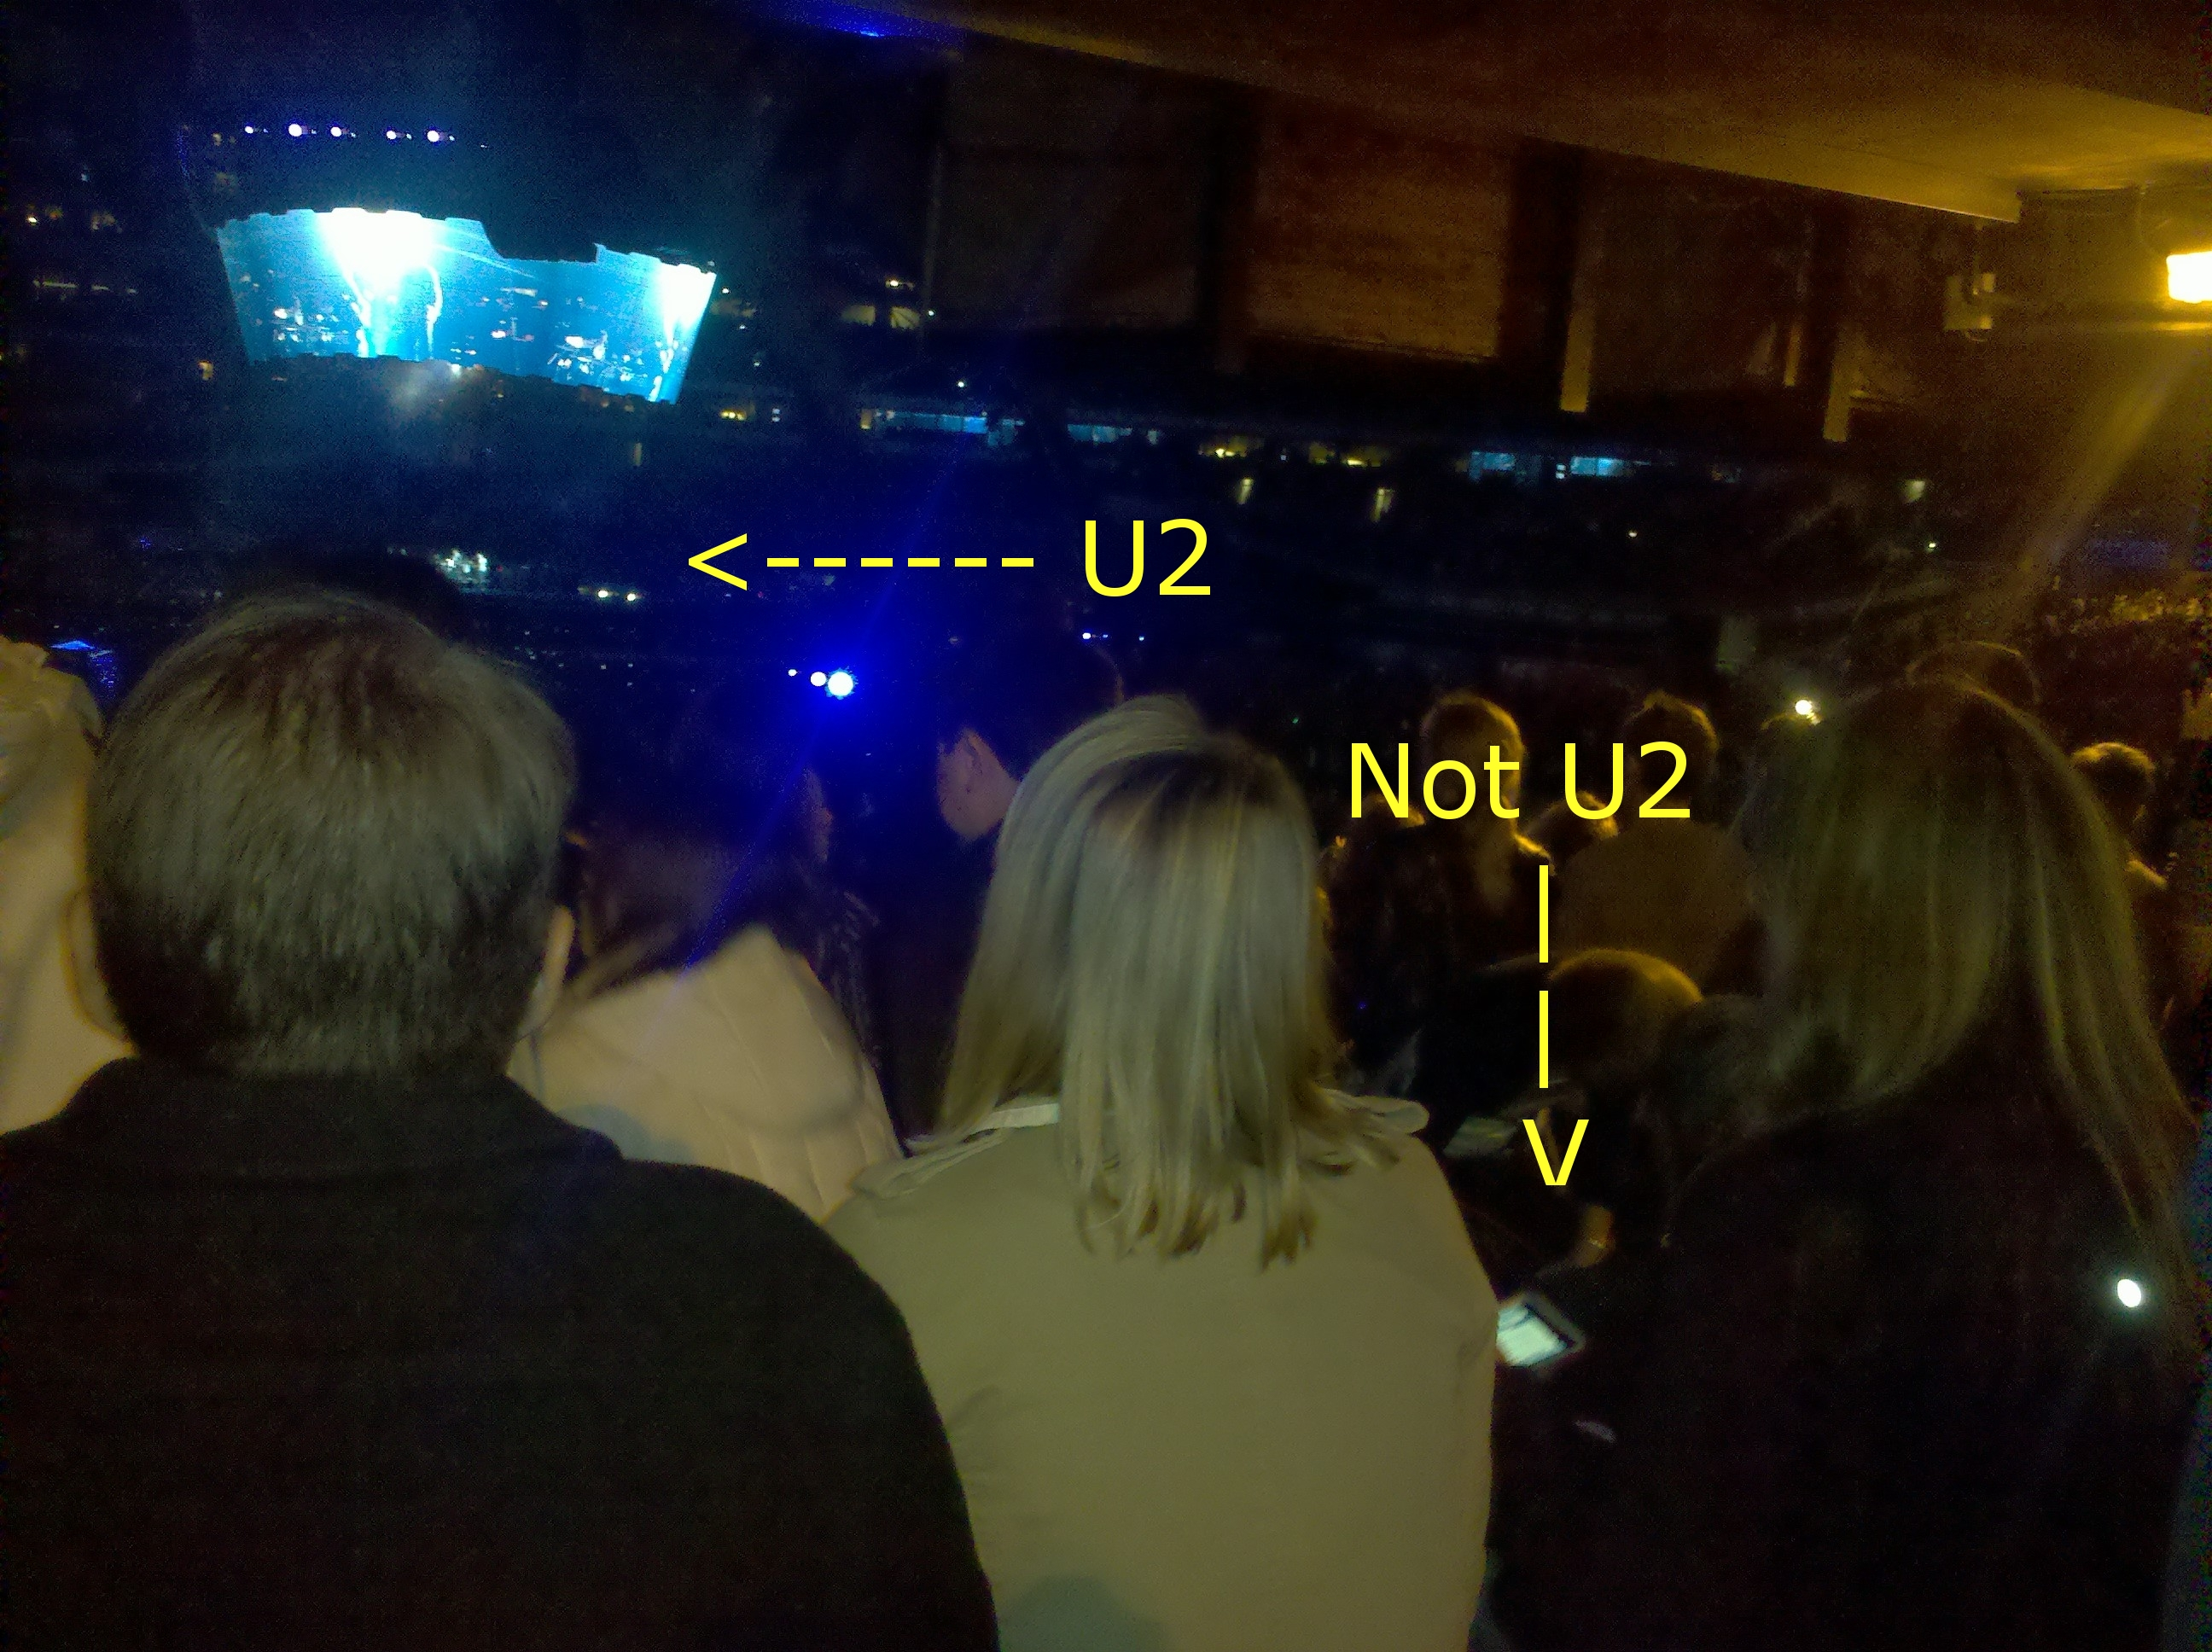 I took this photo at the U2 concert in 2011. I haven't been to a concert since.